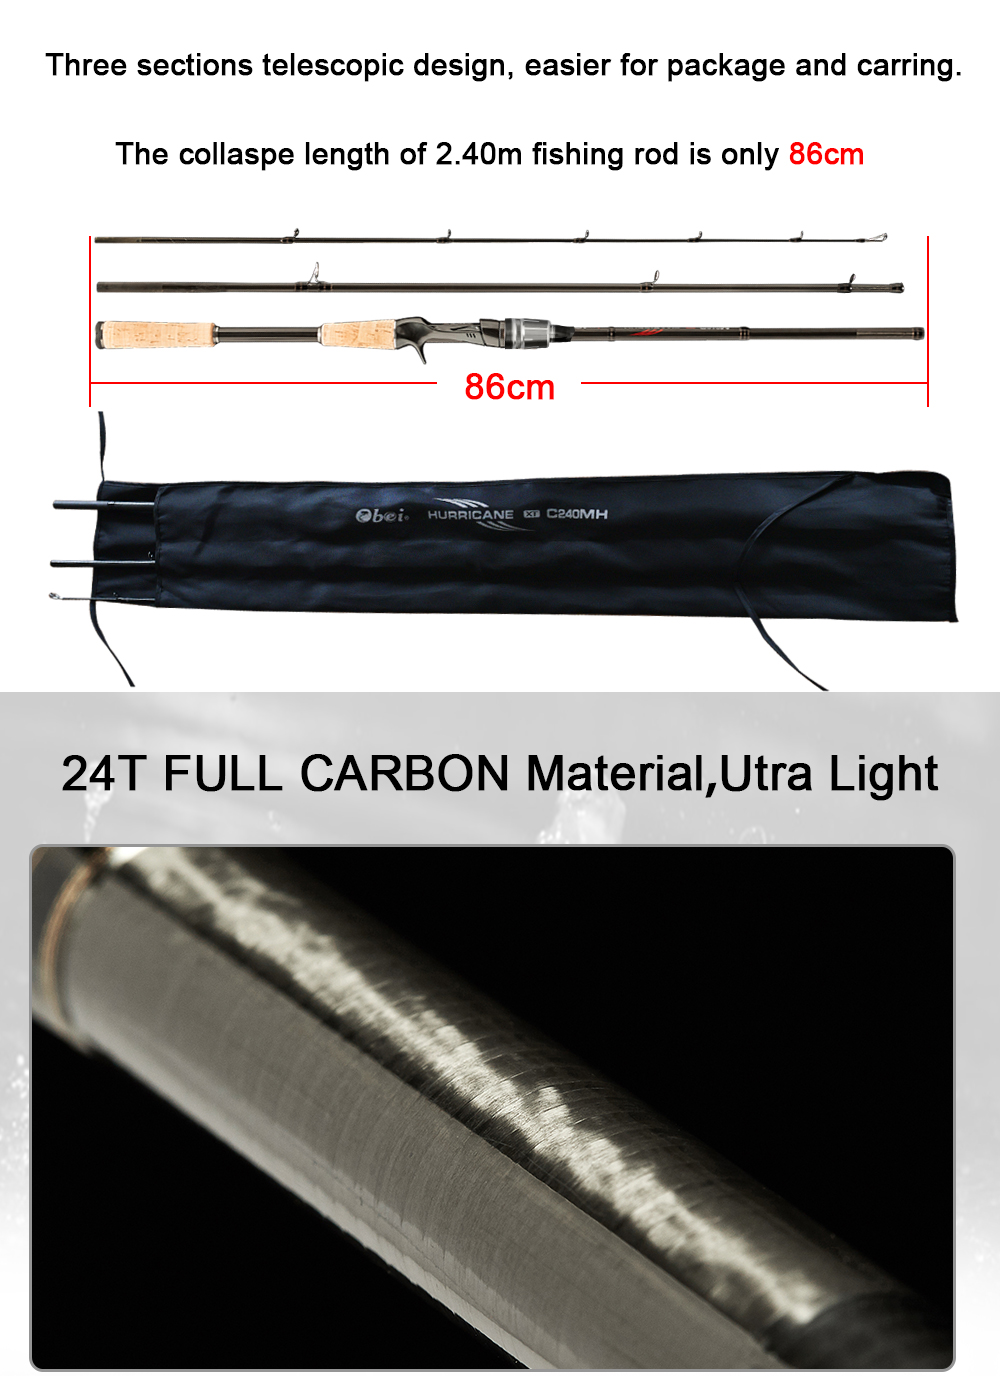 Obei HURRICANE 3 section Bait Casting Fishing Rod in Telescopic Design for Fast Casting and Clear Biting 7